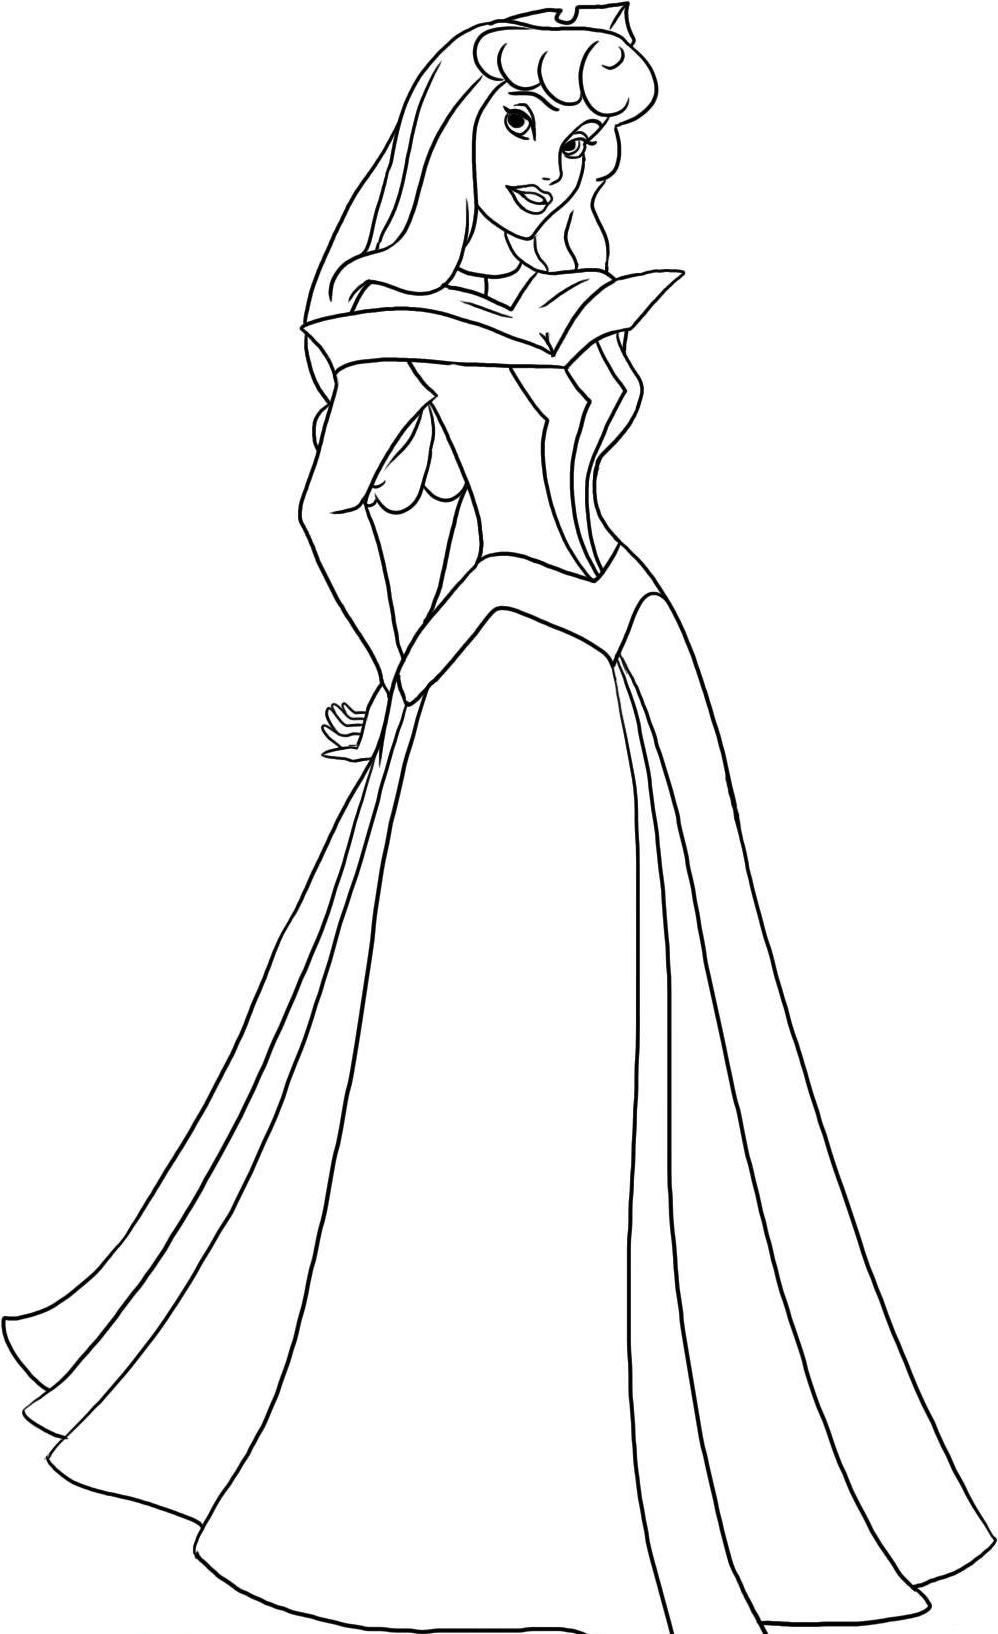 Disney Princess Are Dreamy Coloring Page Cores disney